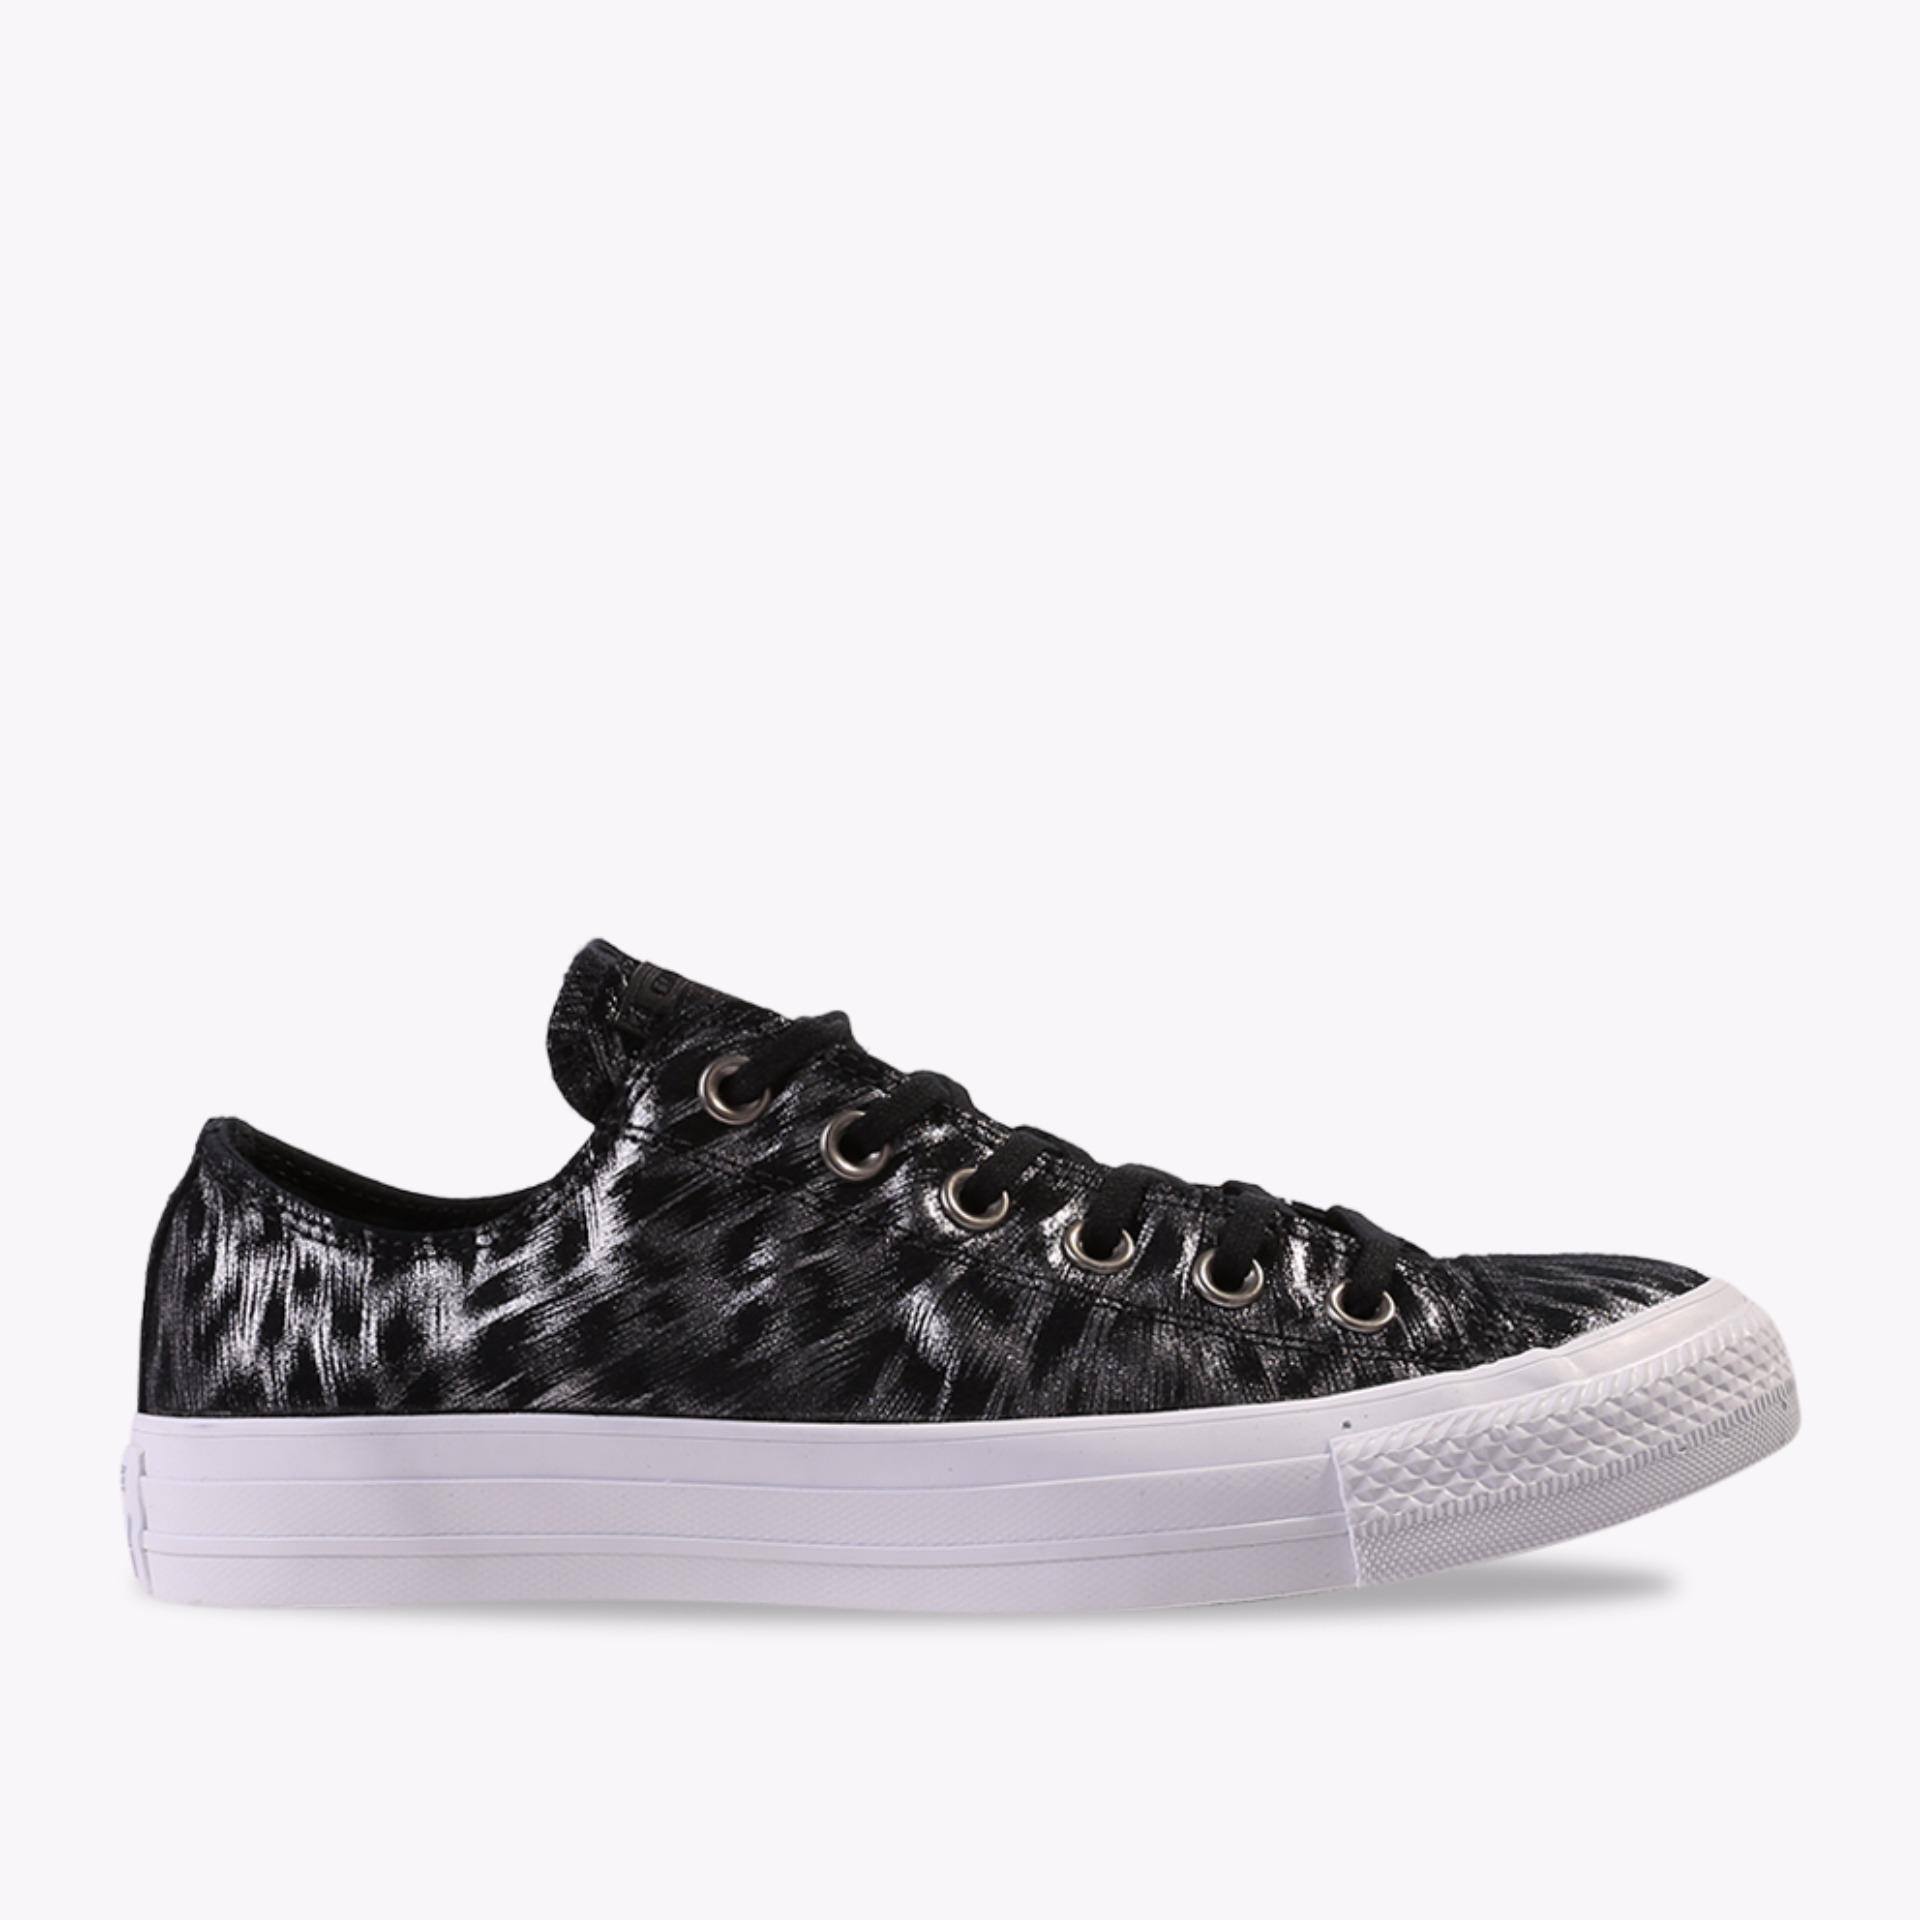 Jual Converse Chuck Taylor All Star Shimmer Suede Ox Women S Sneakers Shoes Hitam Grosir